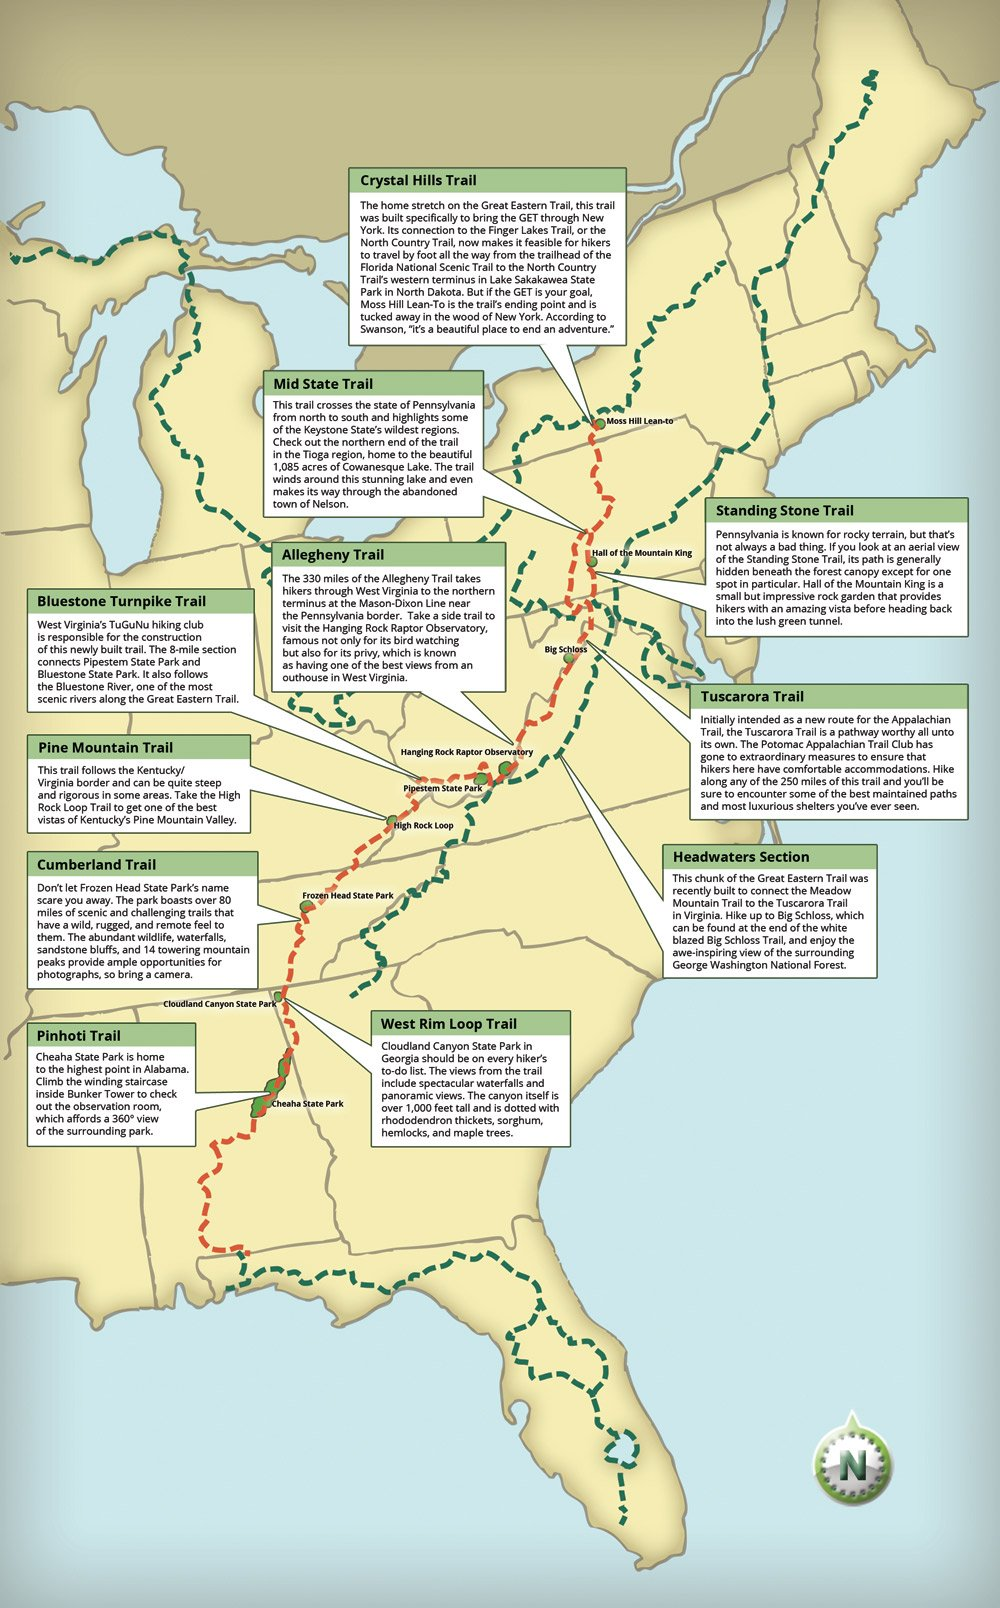 The Great Eastern Trail Could Become the New Appalachian Trail on